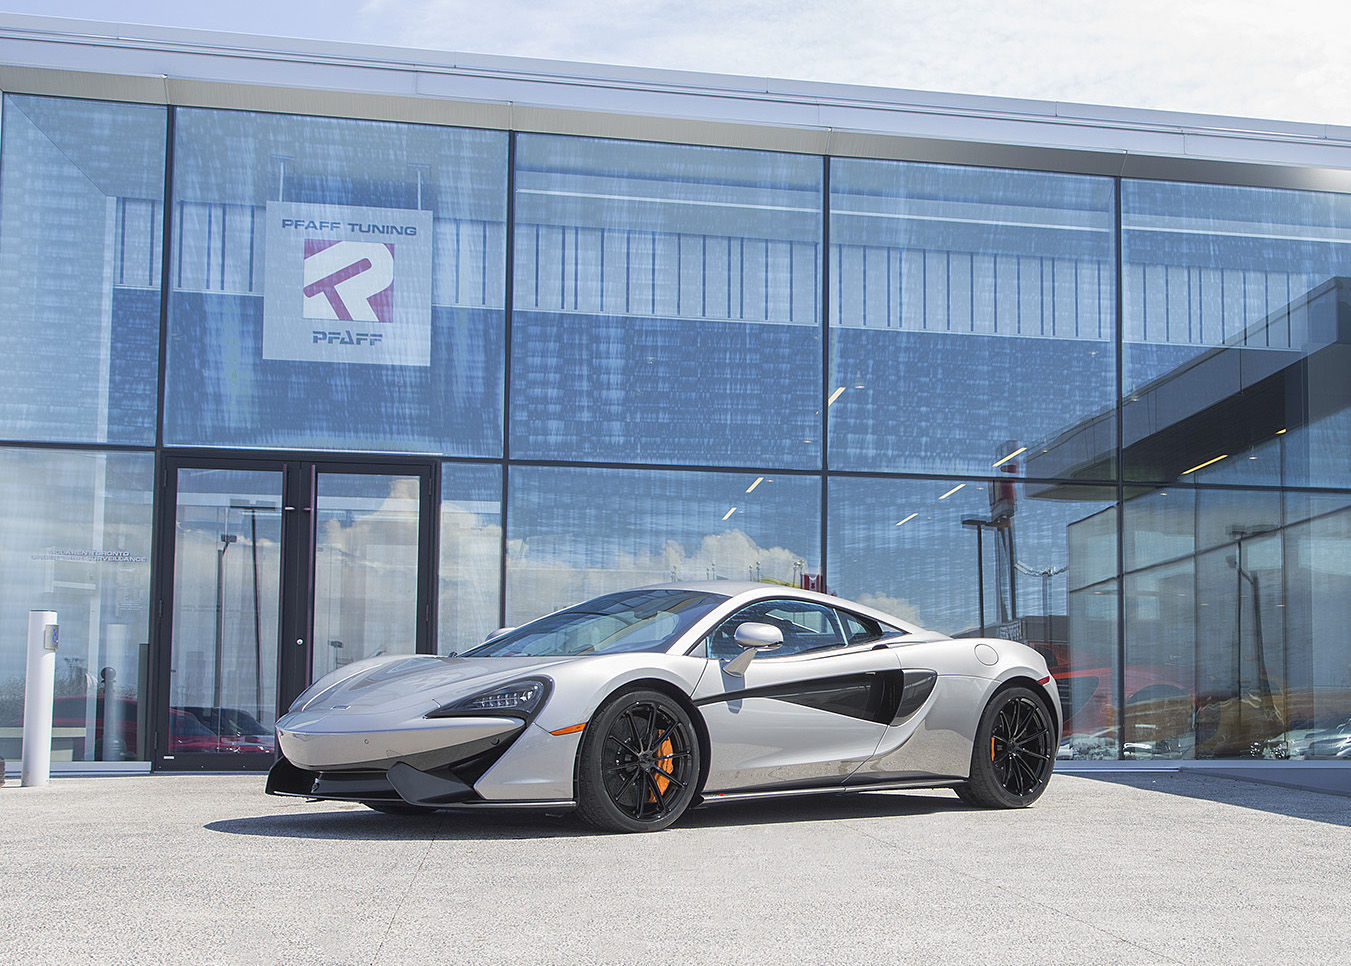 2016 McLaren  | McLaren 570S on Pirelli Trofeo R Tires and Forgeline One Piece Forged Monoblock GT1 5-Lug Wheels!